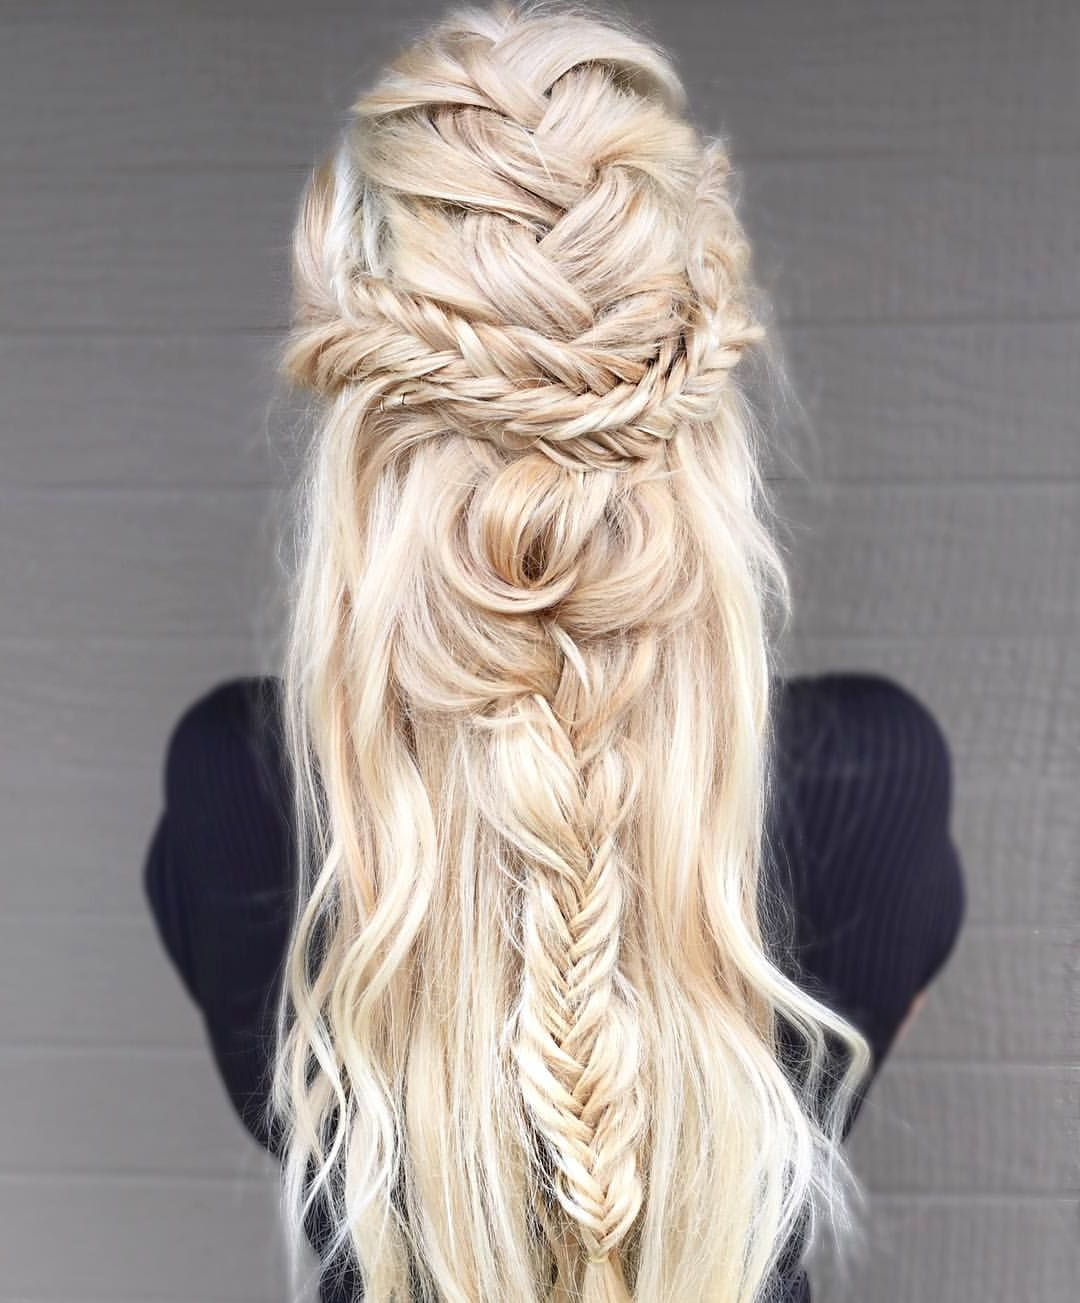 60 Cute Boho Hairstyles For Short, Long, Medium Length Hair Pertaining To Most Recent Braid Spikelet Prom Hairstyles (View 4 of 20)